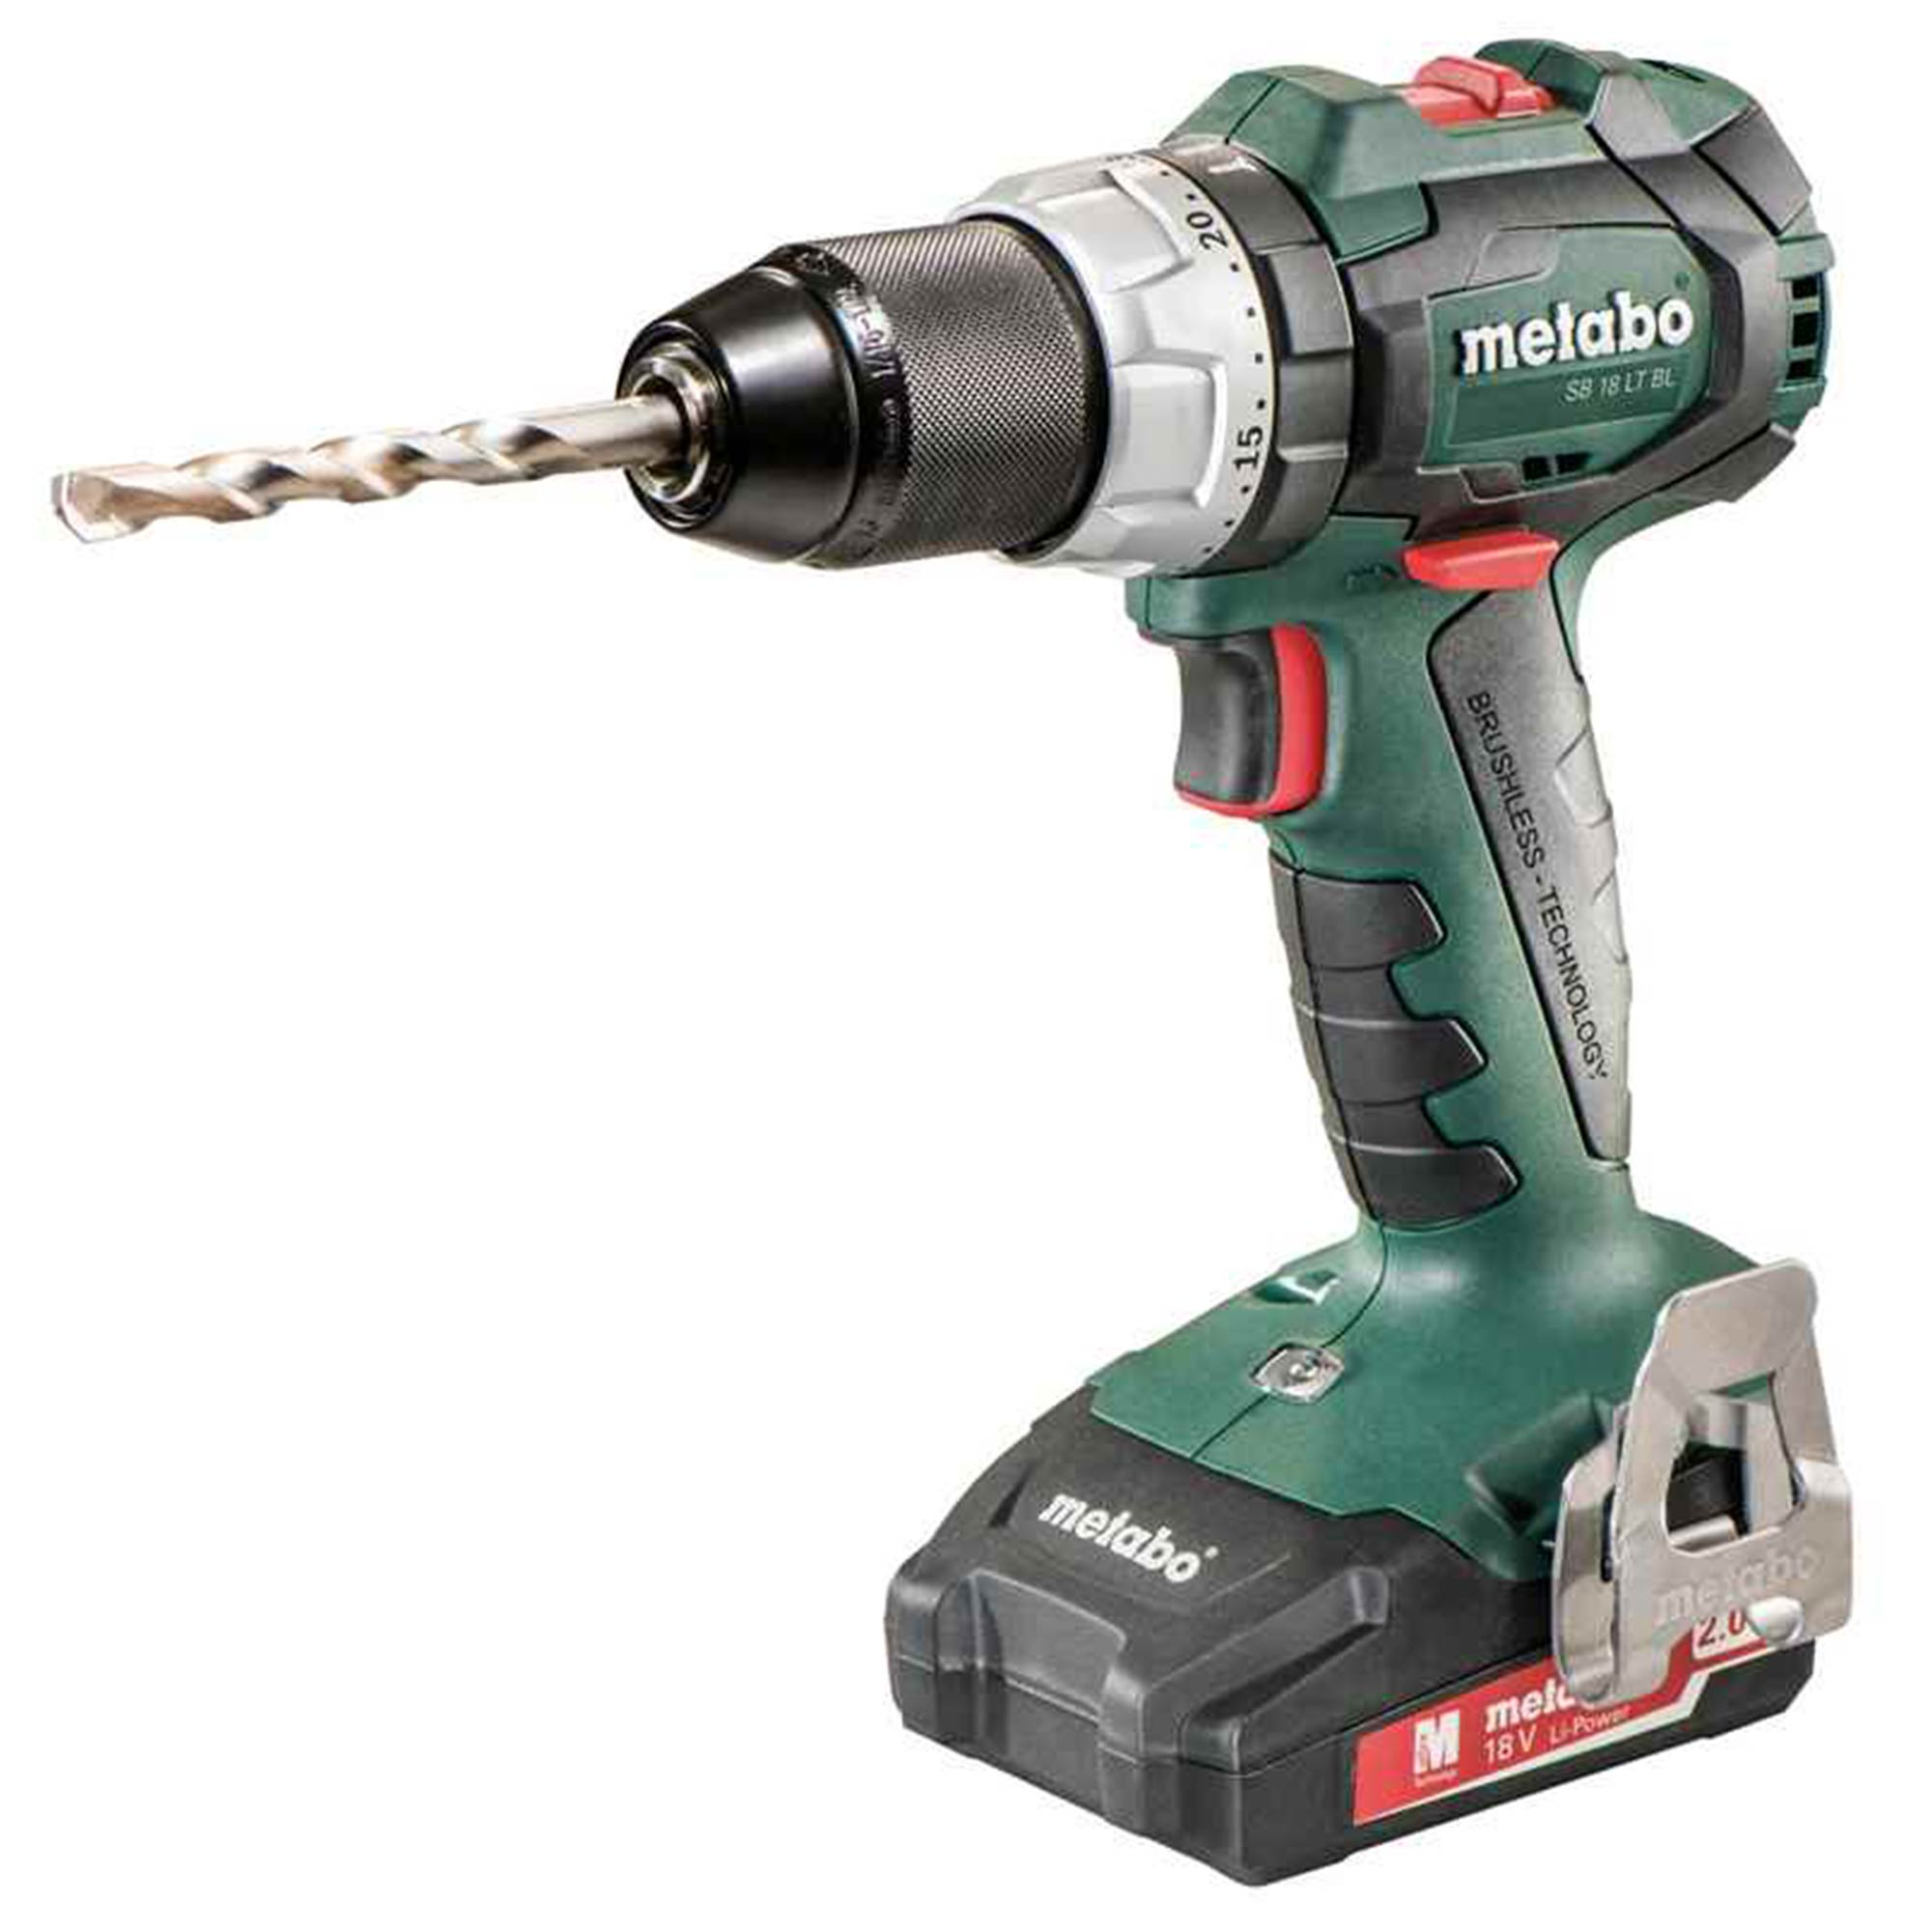 metabo sb18ltbl metabo 18v hammer drill driver. Black Bedroom Furniture Sets. Home Design Ideas